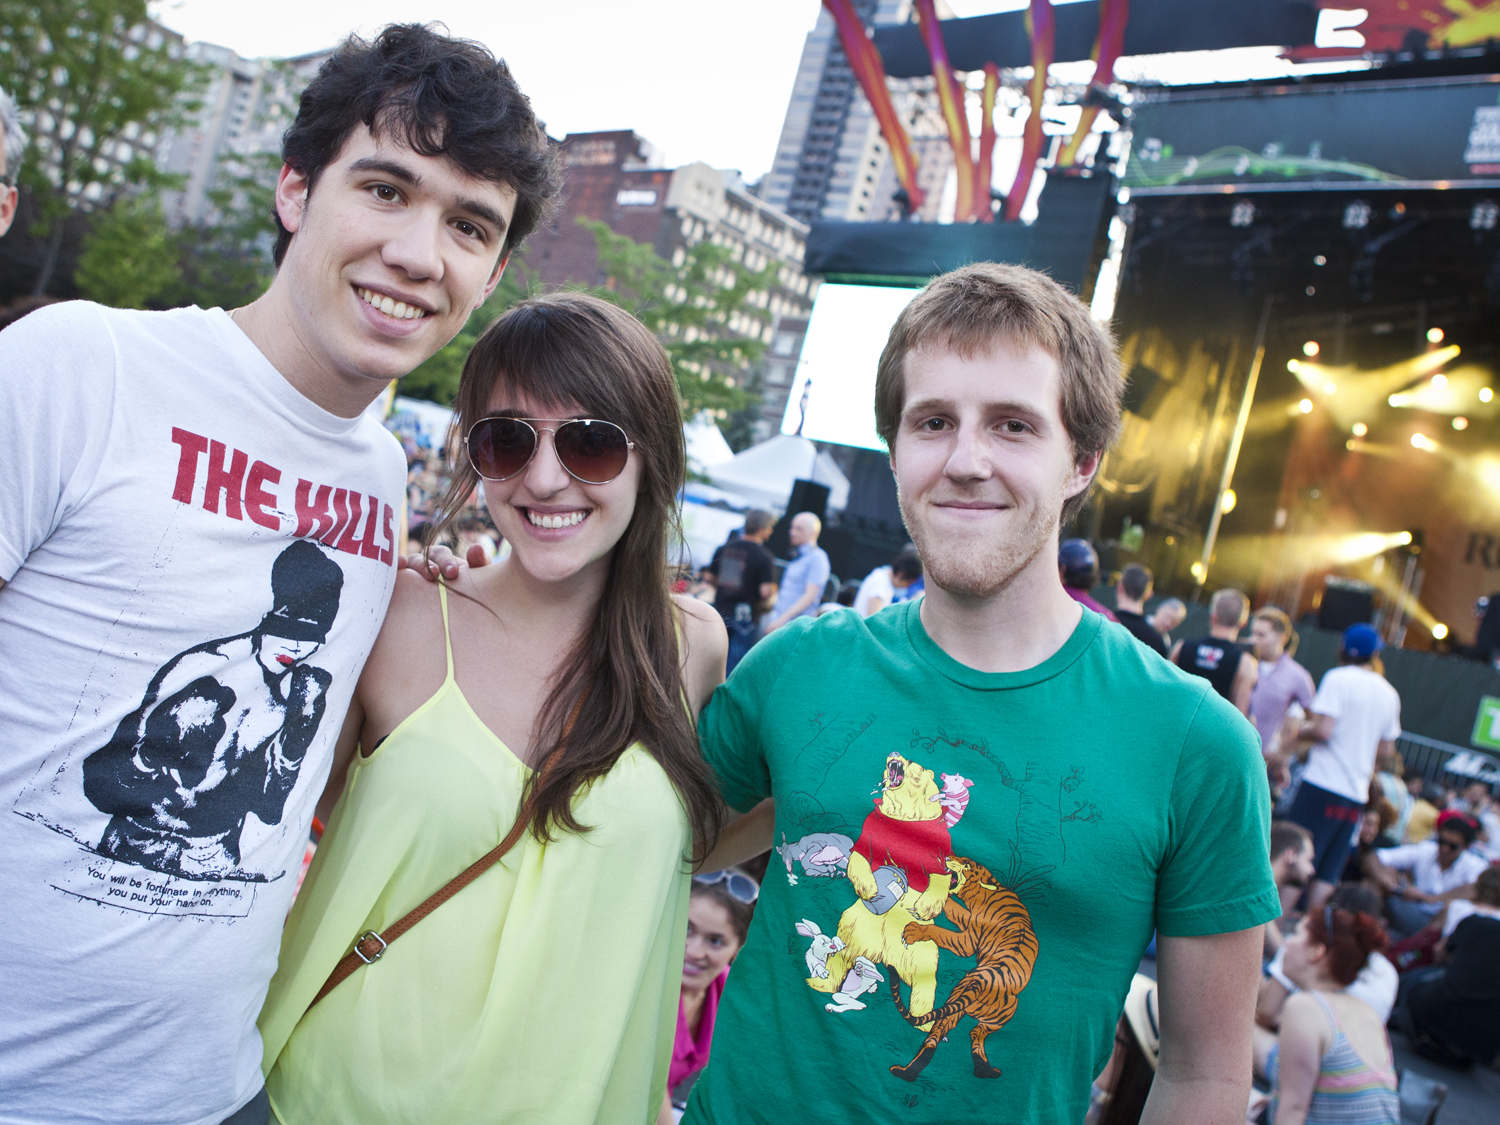 Chromeo au Jazz Fest: 2 frenches et 2 hot dogs on the side